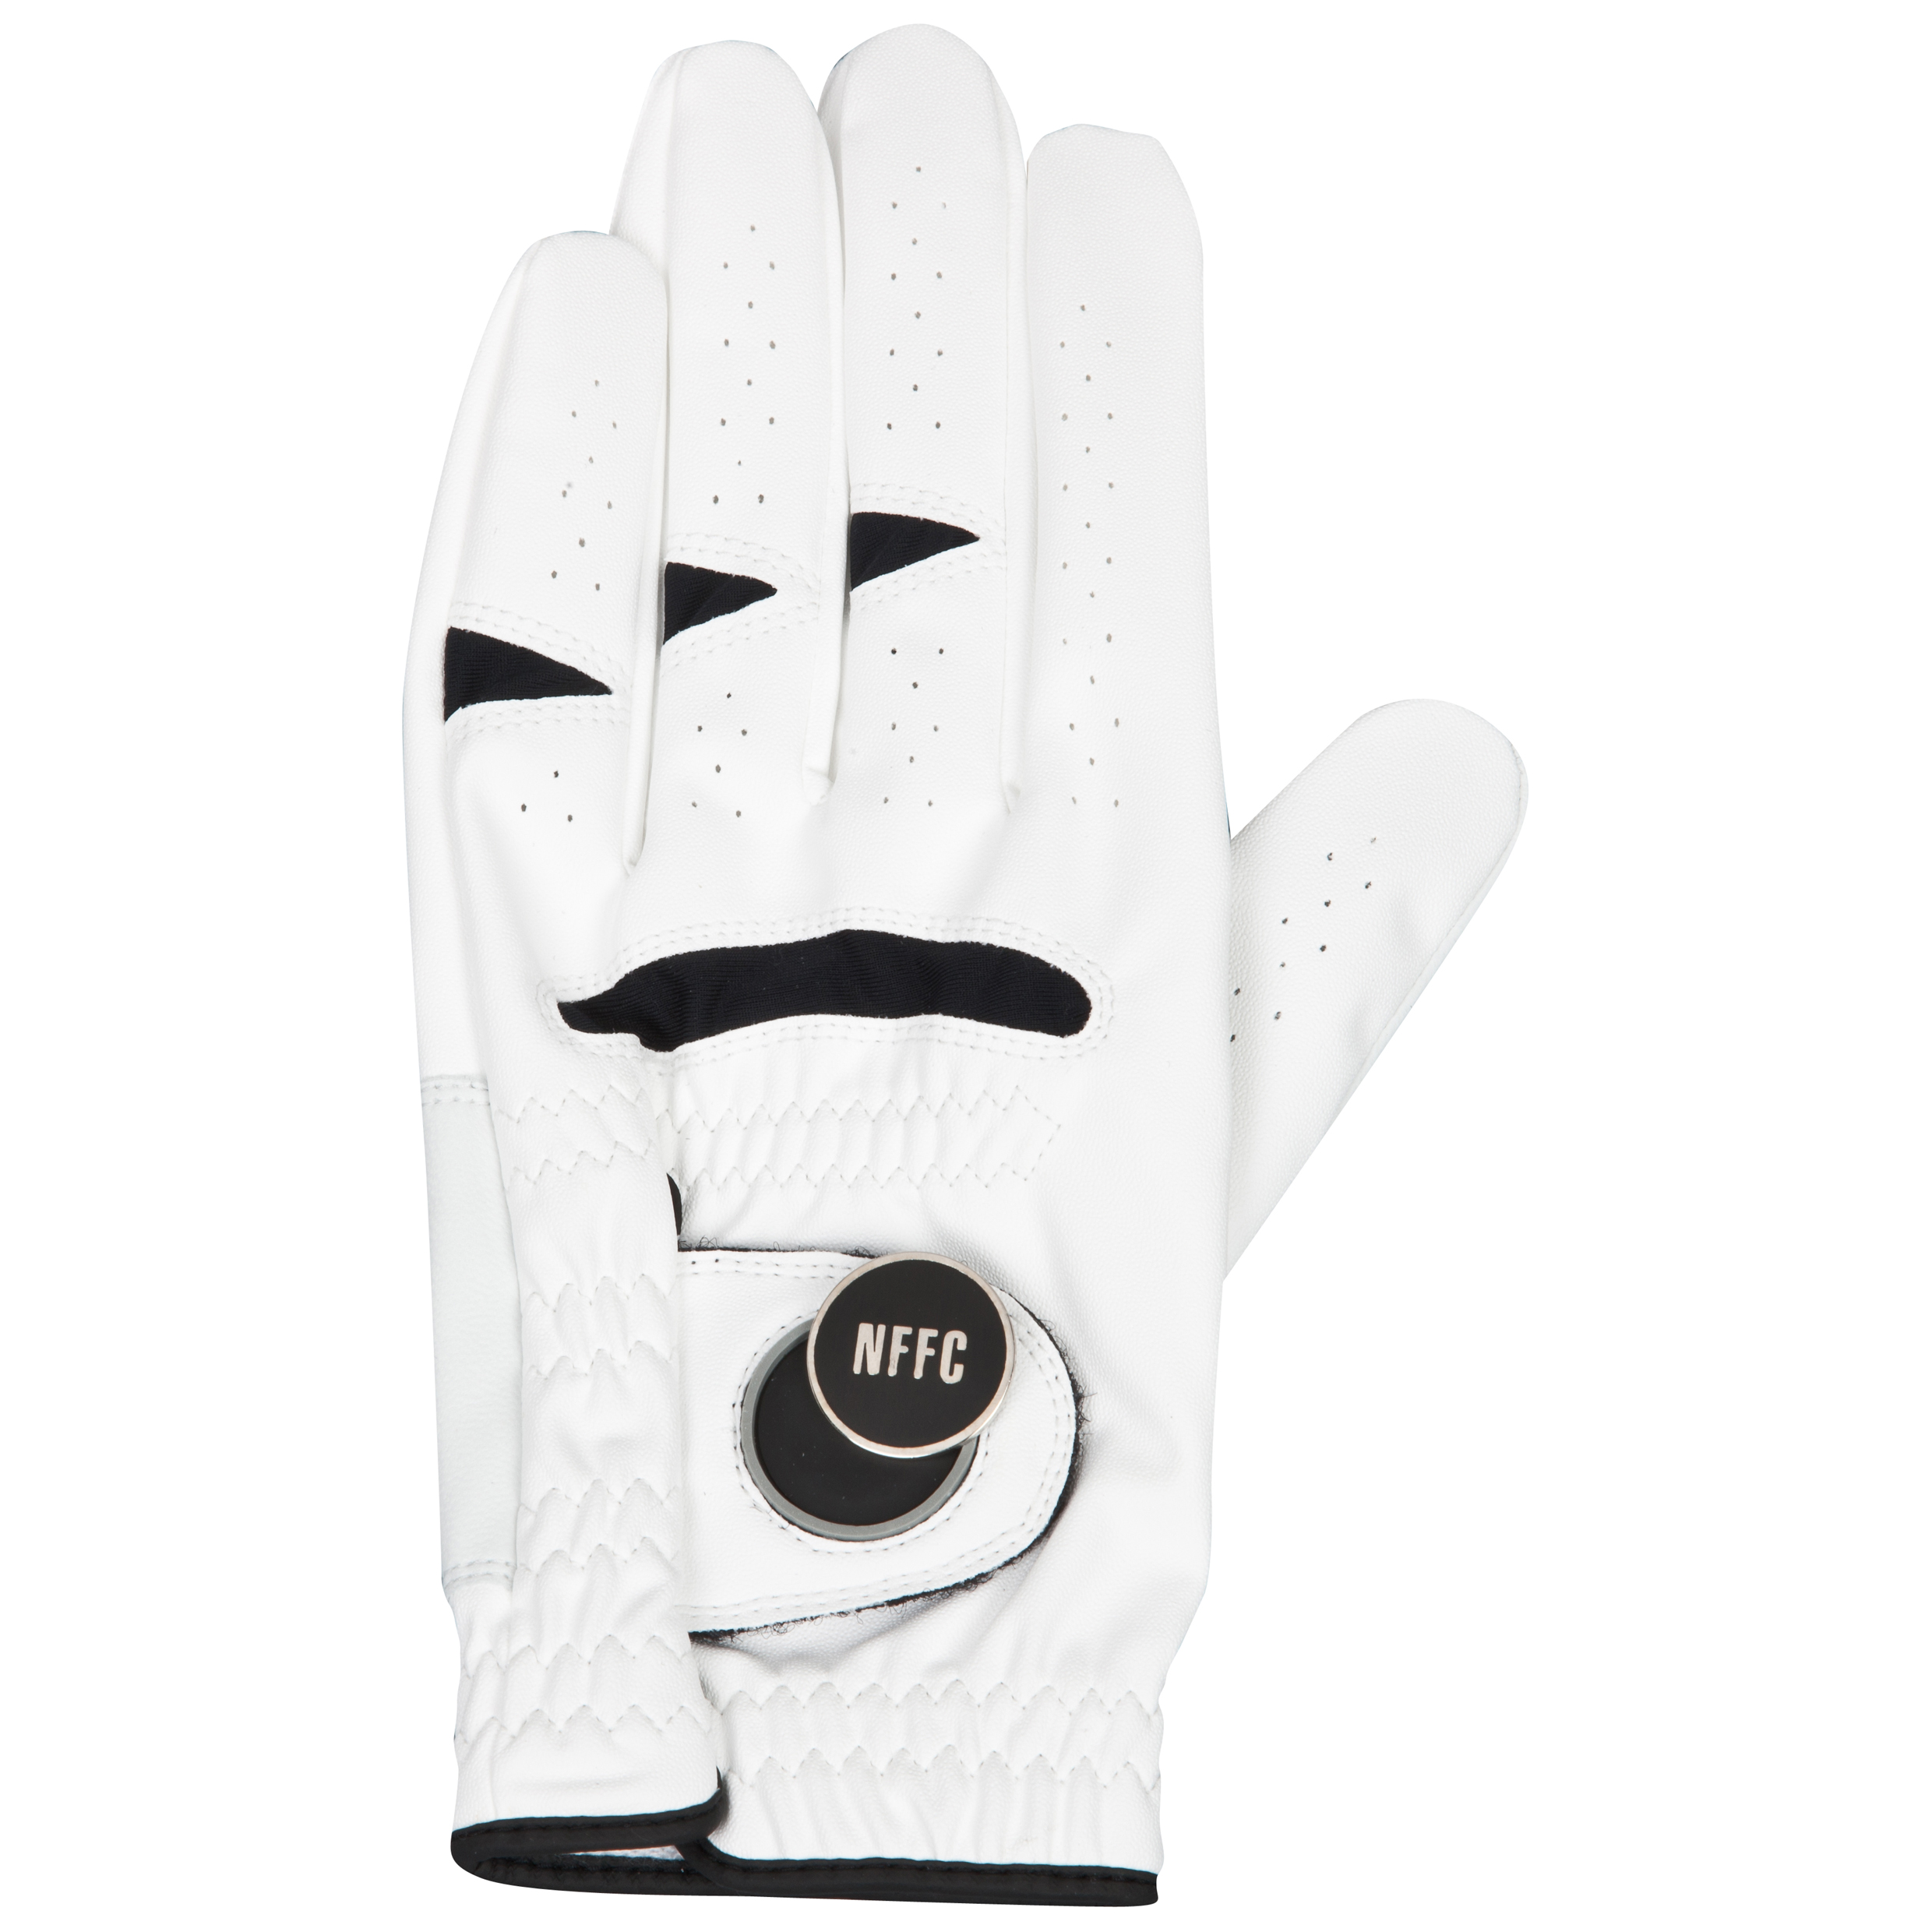 Nottingham Forest Executive Golf Glove